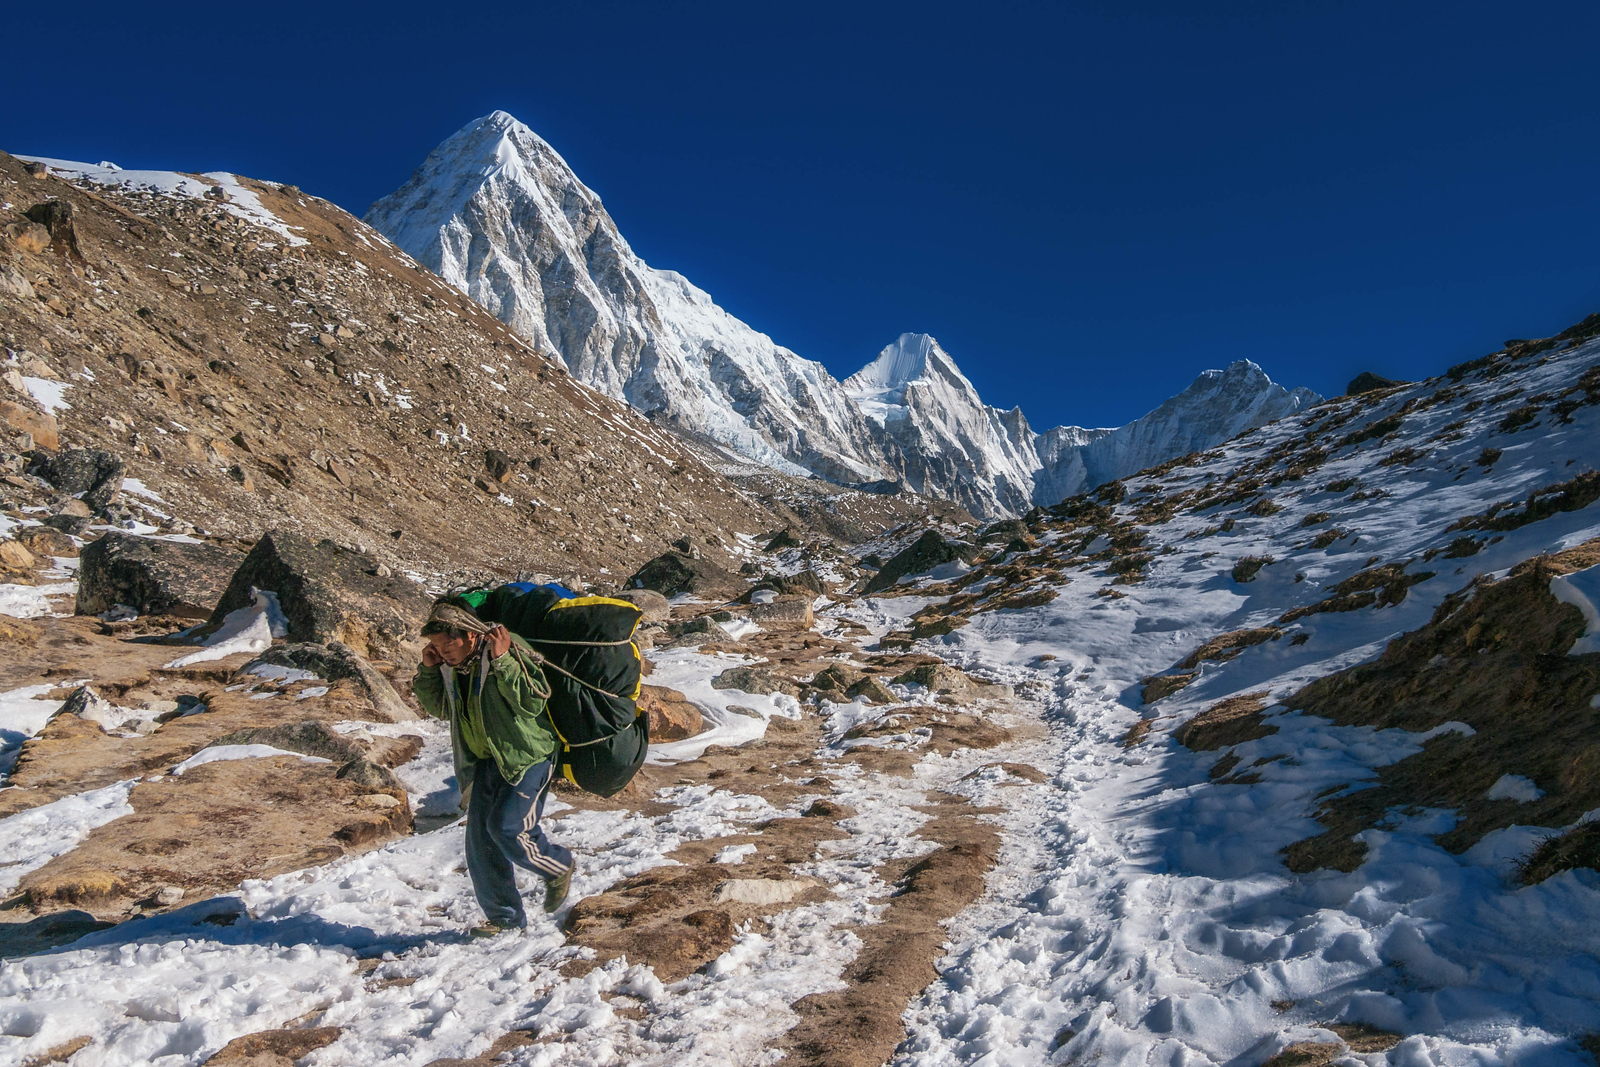 A Sunny day on the way to Mount Everest Base Camp